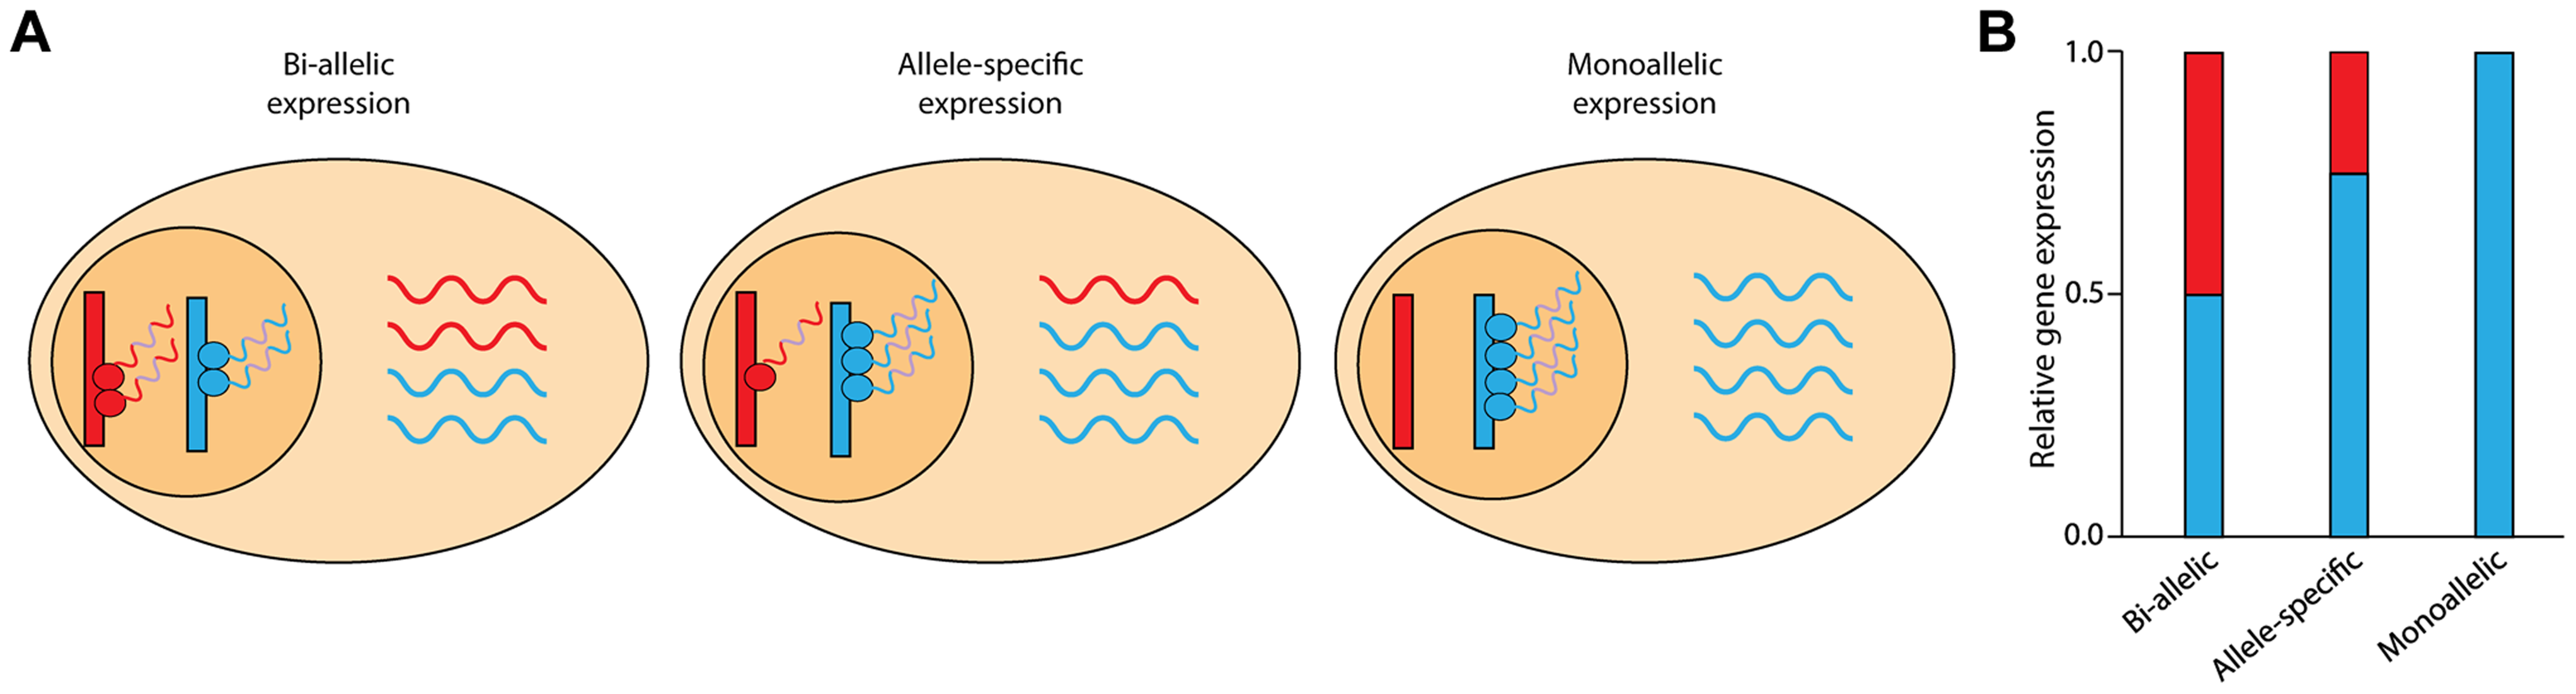 Schematic of allele-specific expression.